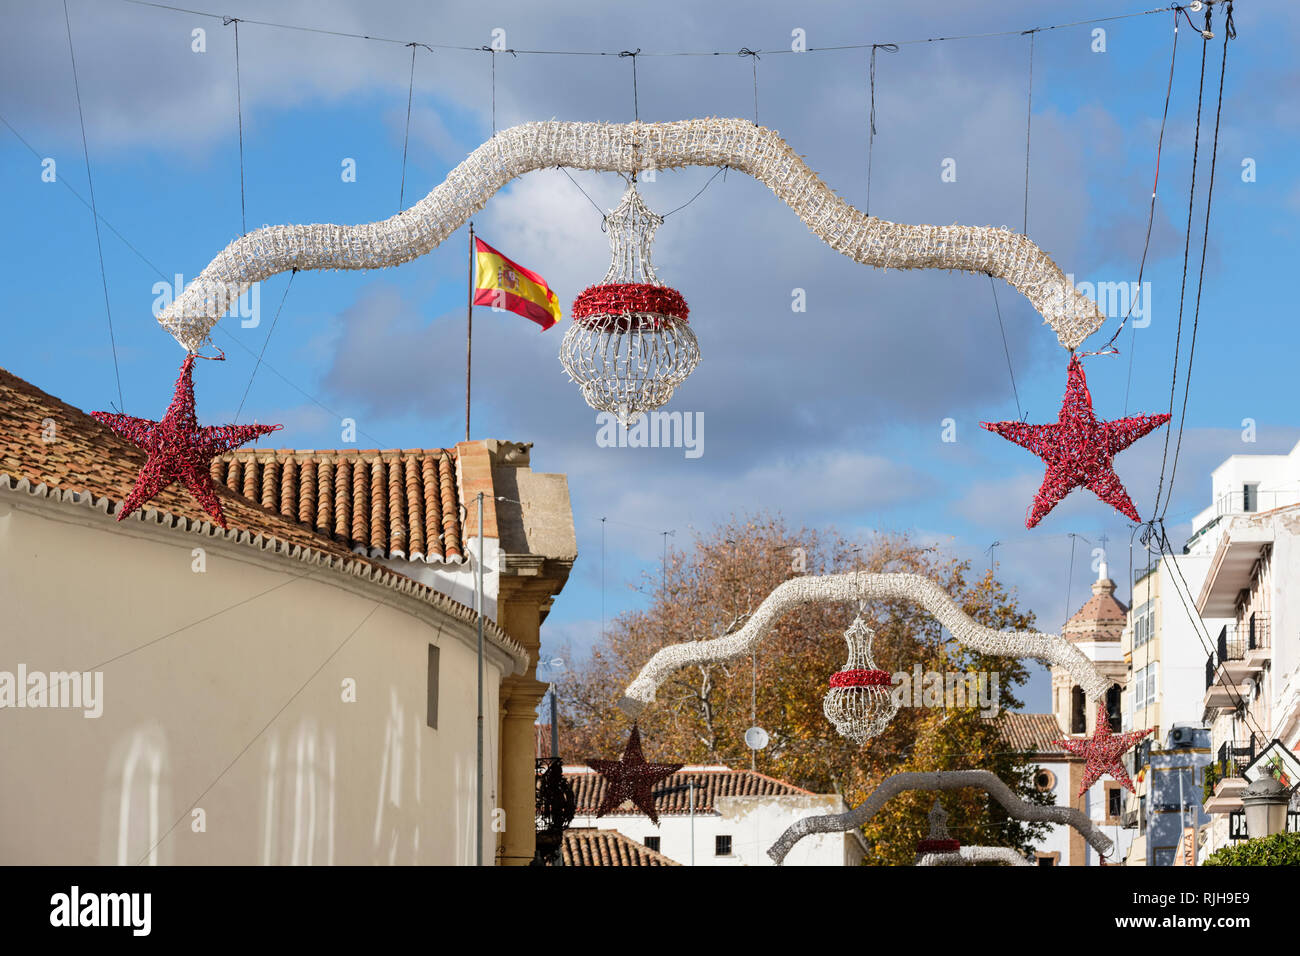 Streetscene outside bullring with christmas decorations, Ronda, Malaga, Andalucia, Spain, - Stock Image